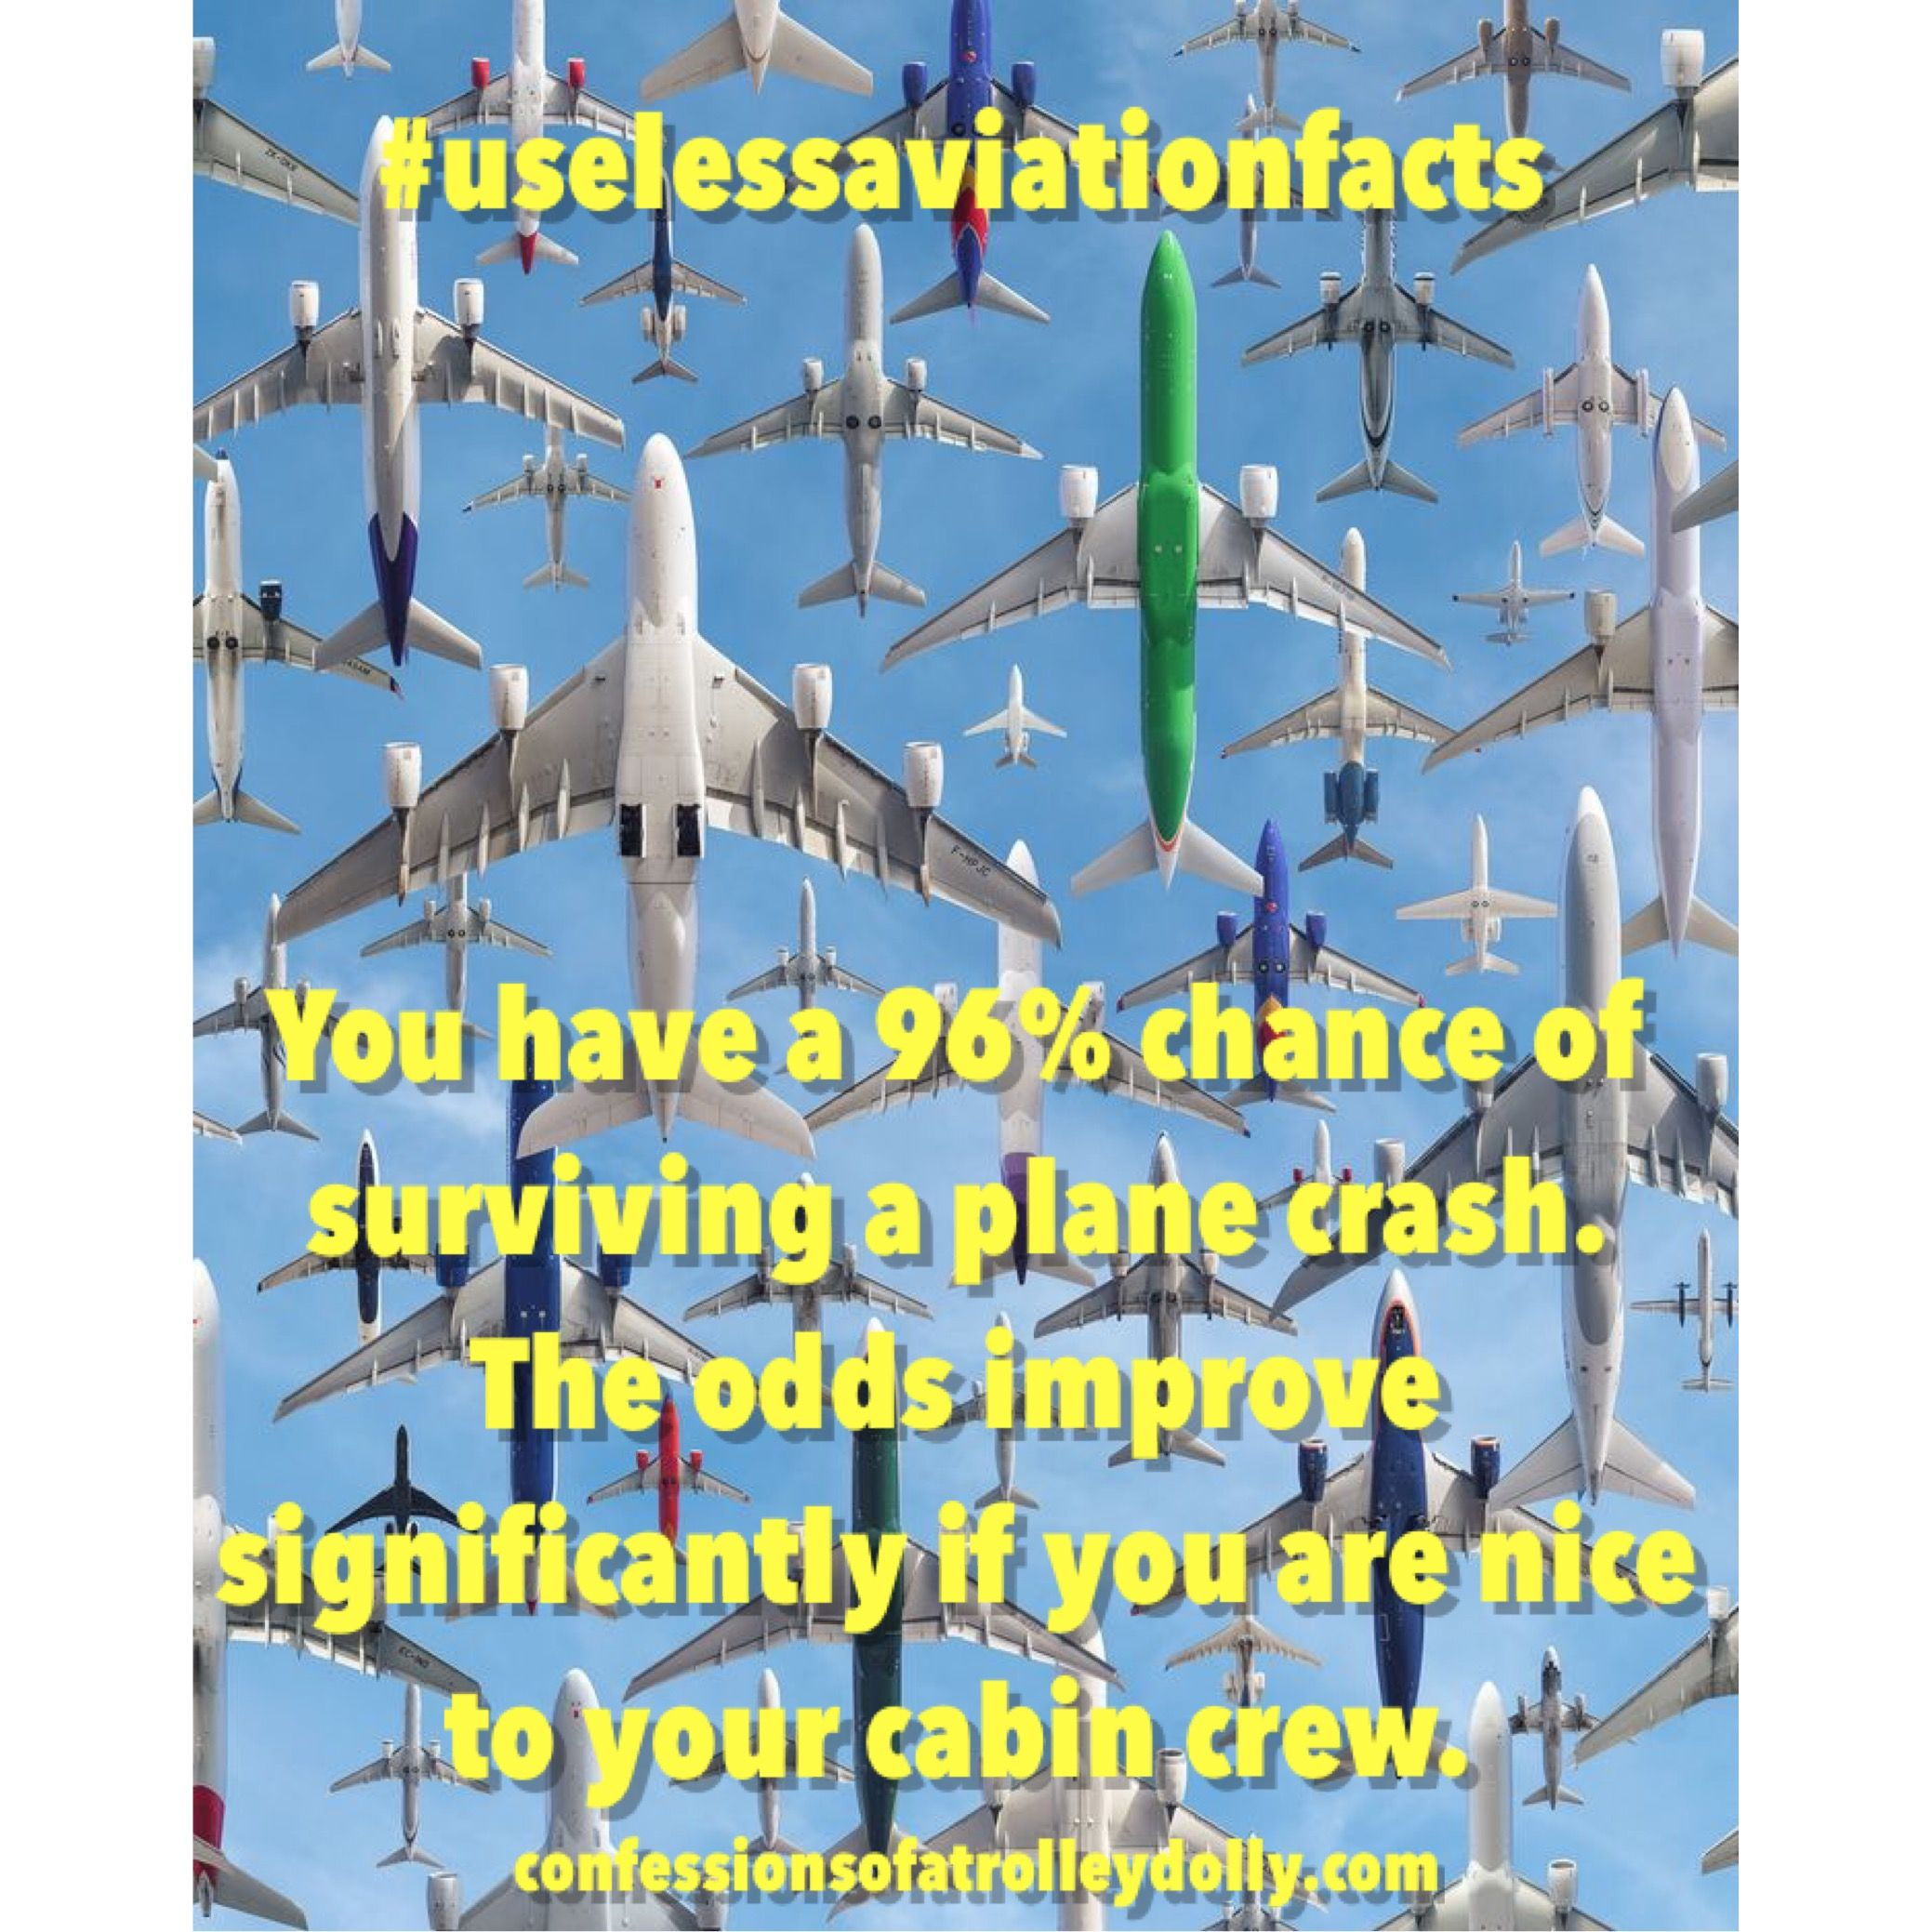 useless aviation fact of the day ️ #uselessaviationfacts #